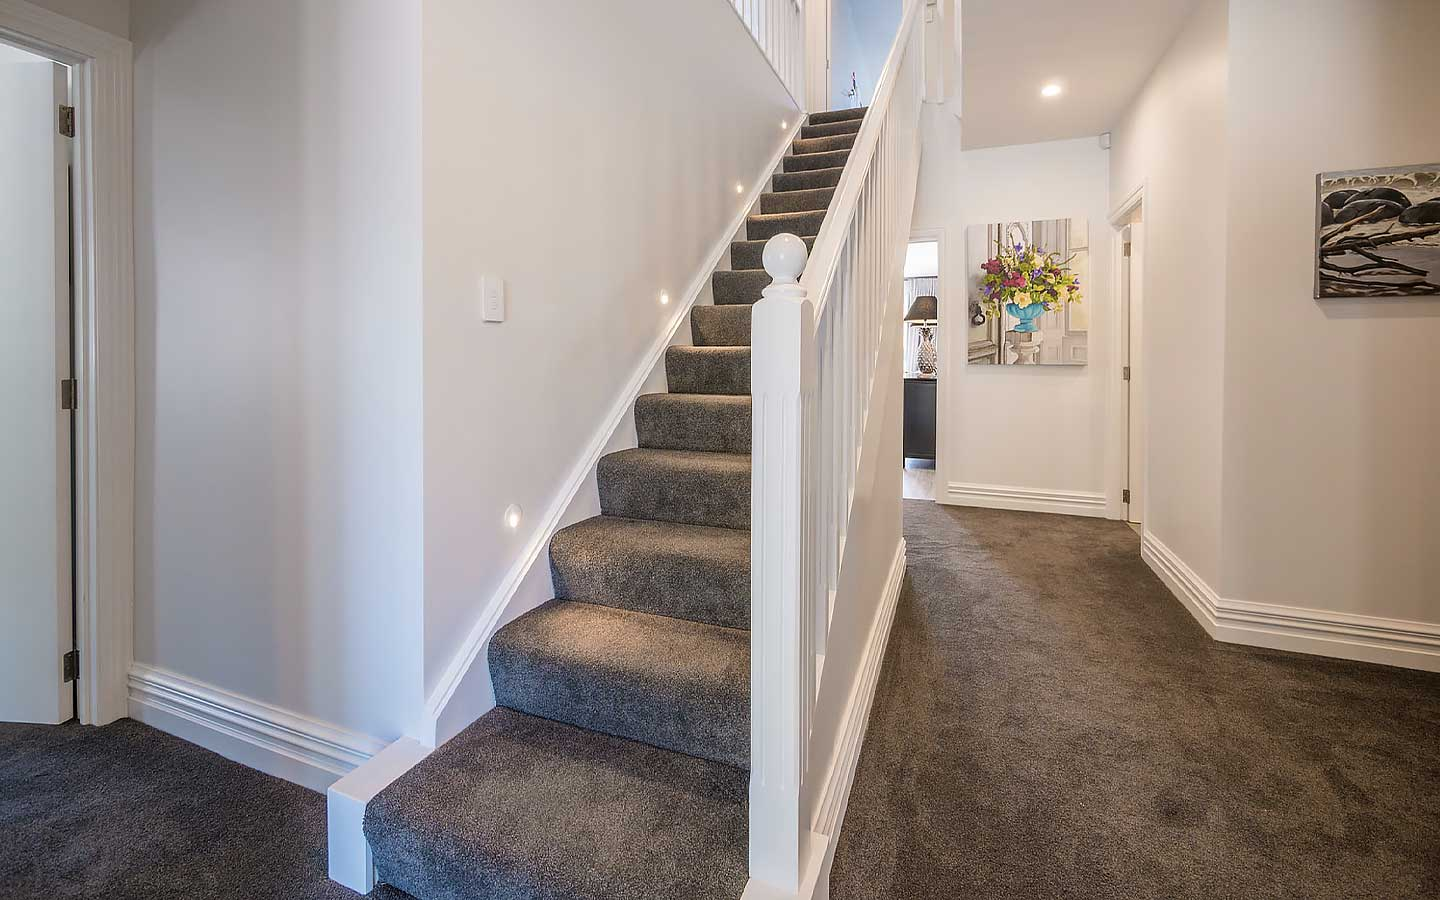 Residential stairwell.